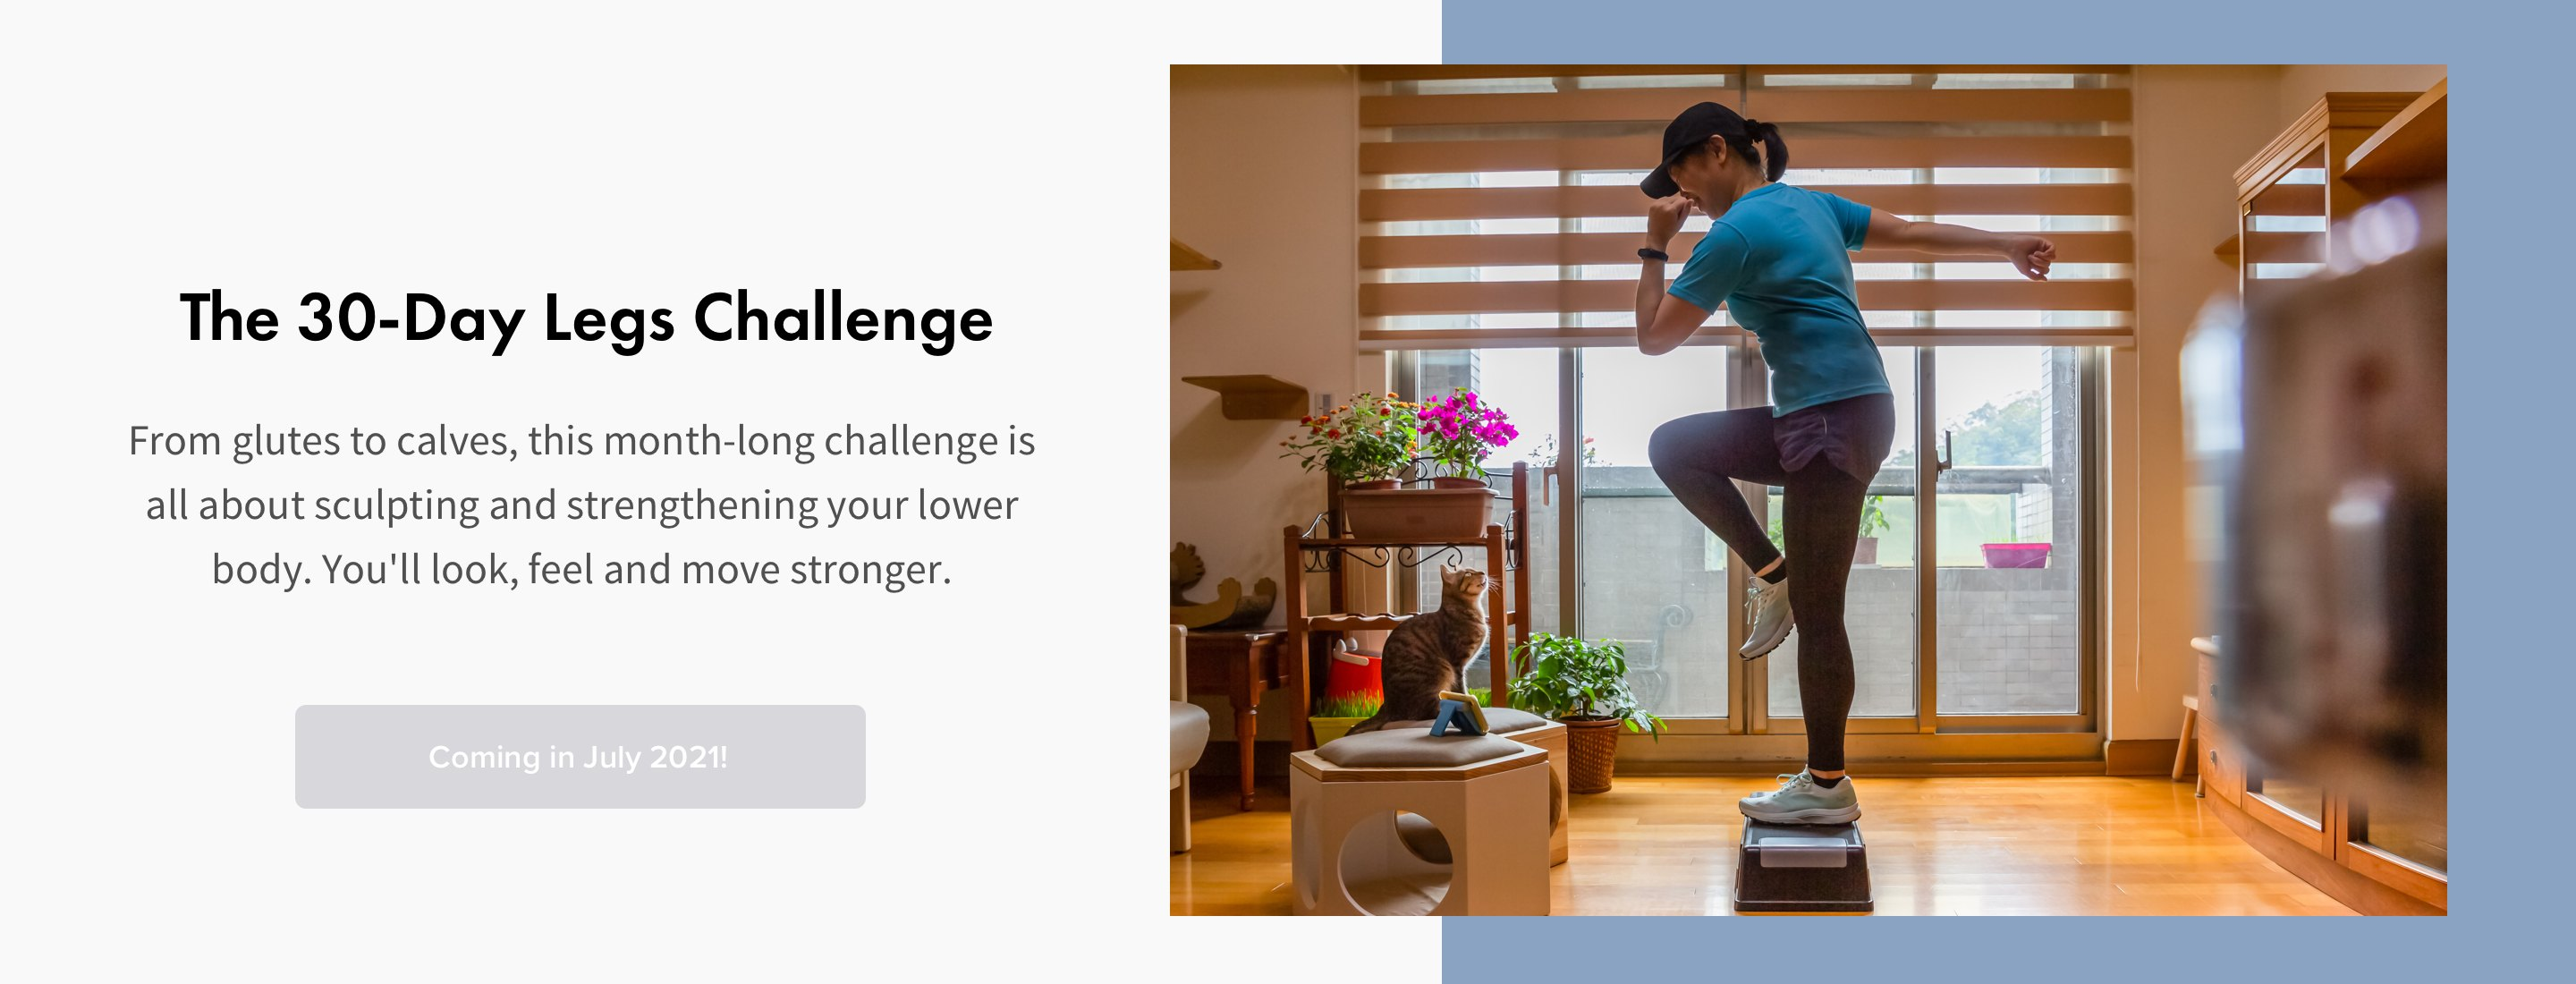 woman in blue shirt and black hat doing step up exercise at home for stronger legs challenge